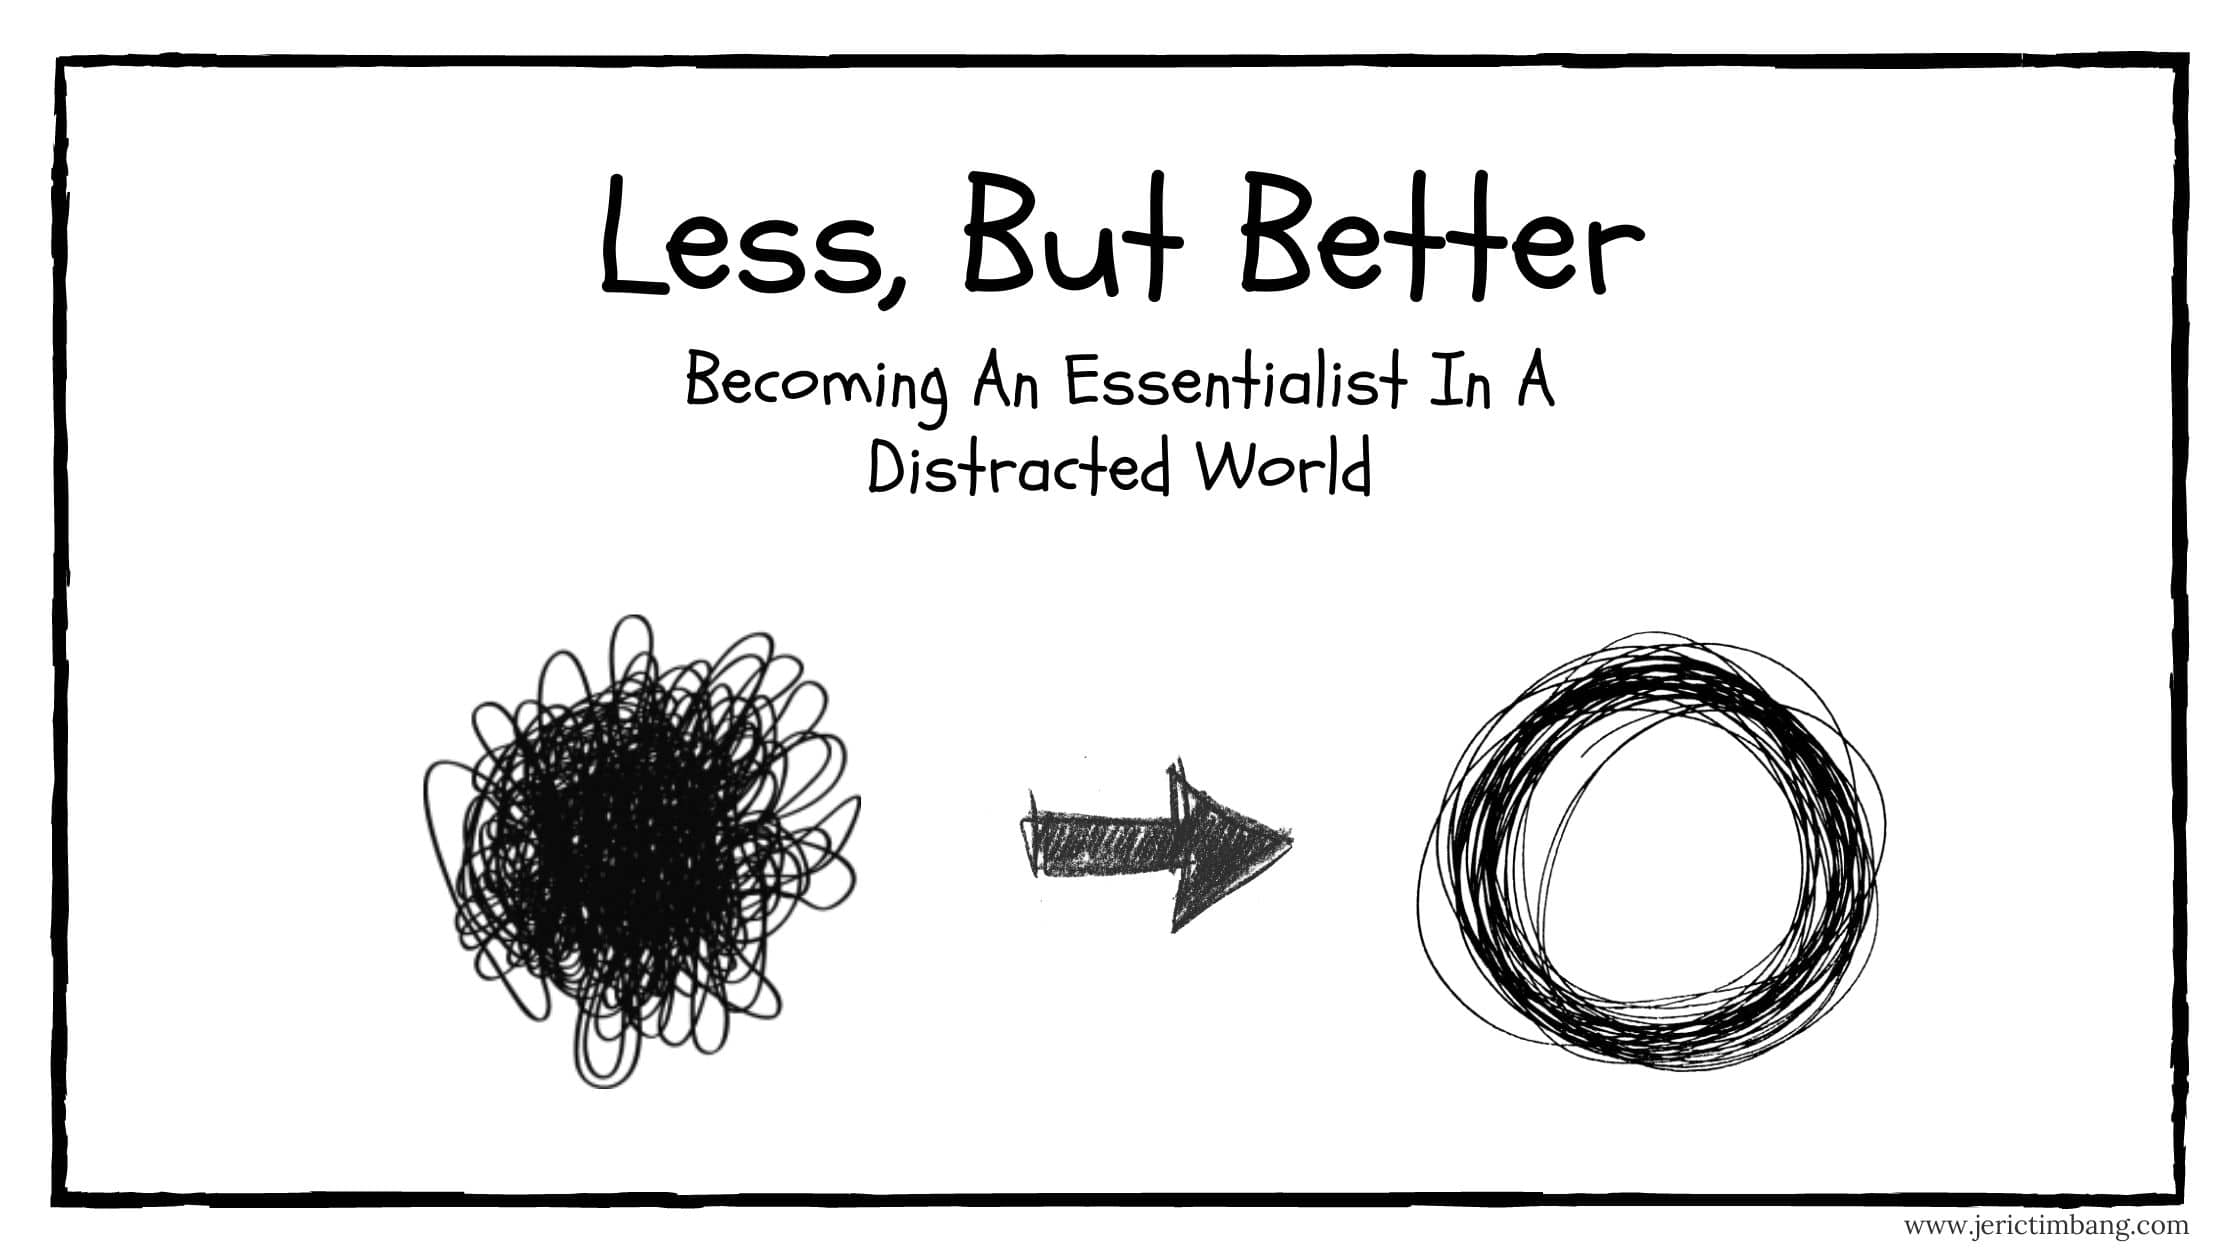 Less But Better: Becoming An Essentialist In A Distracted World